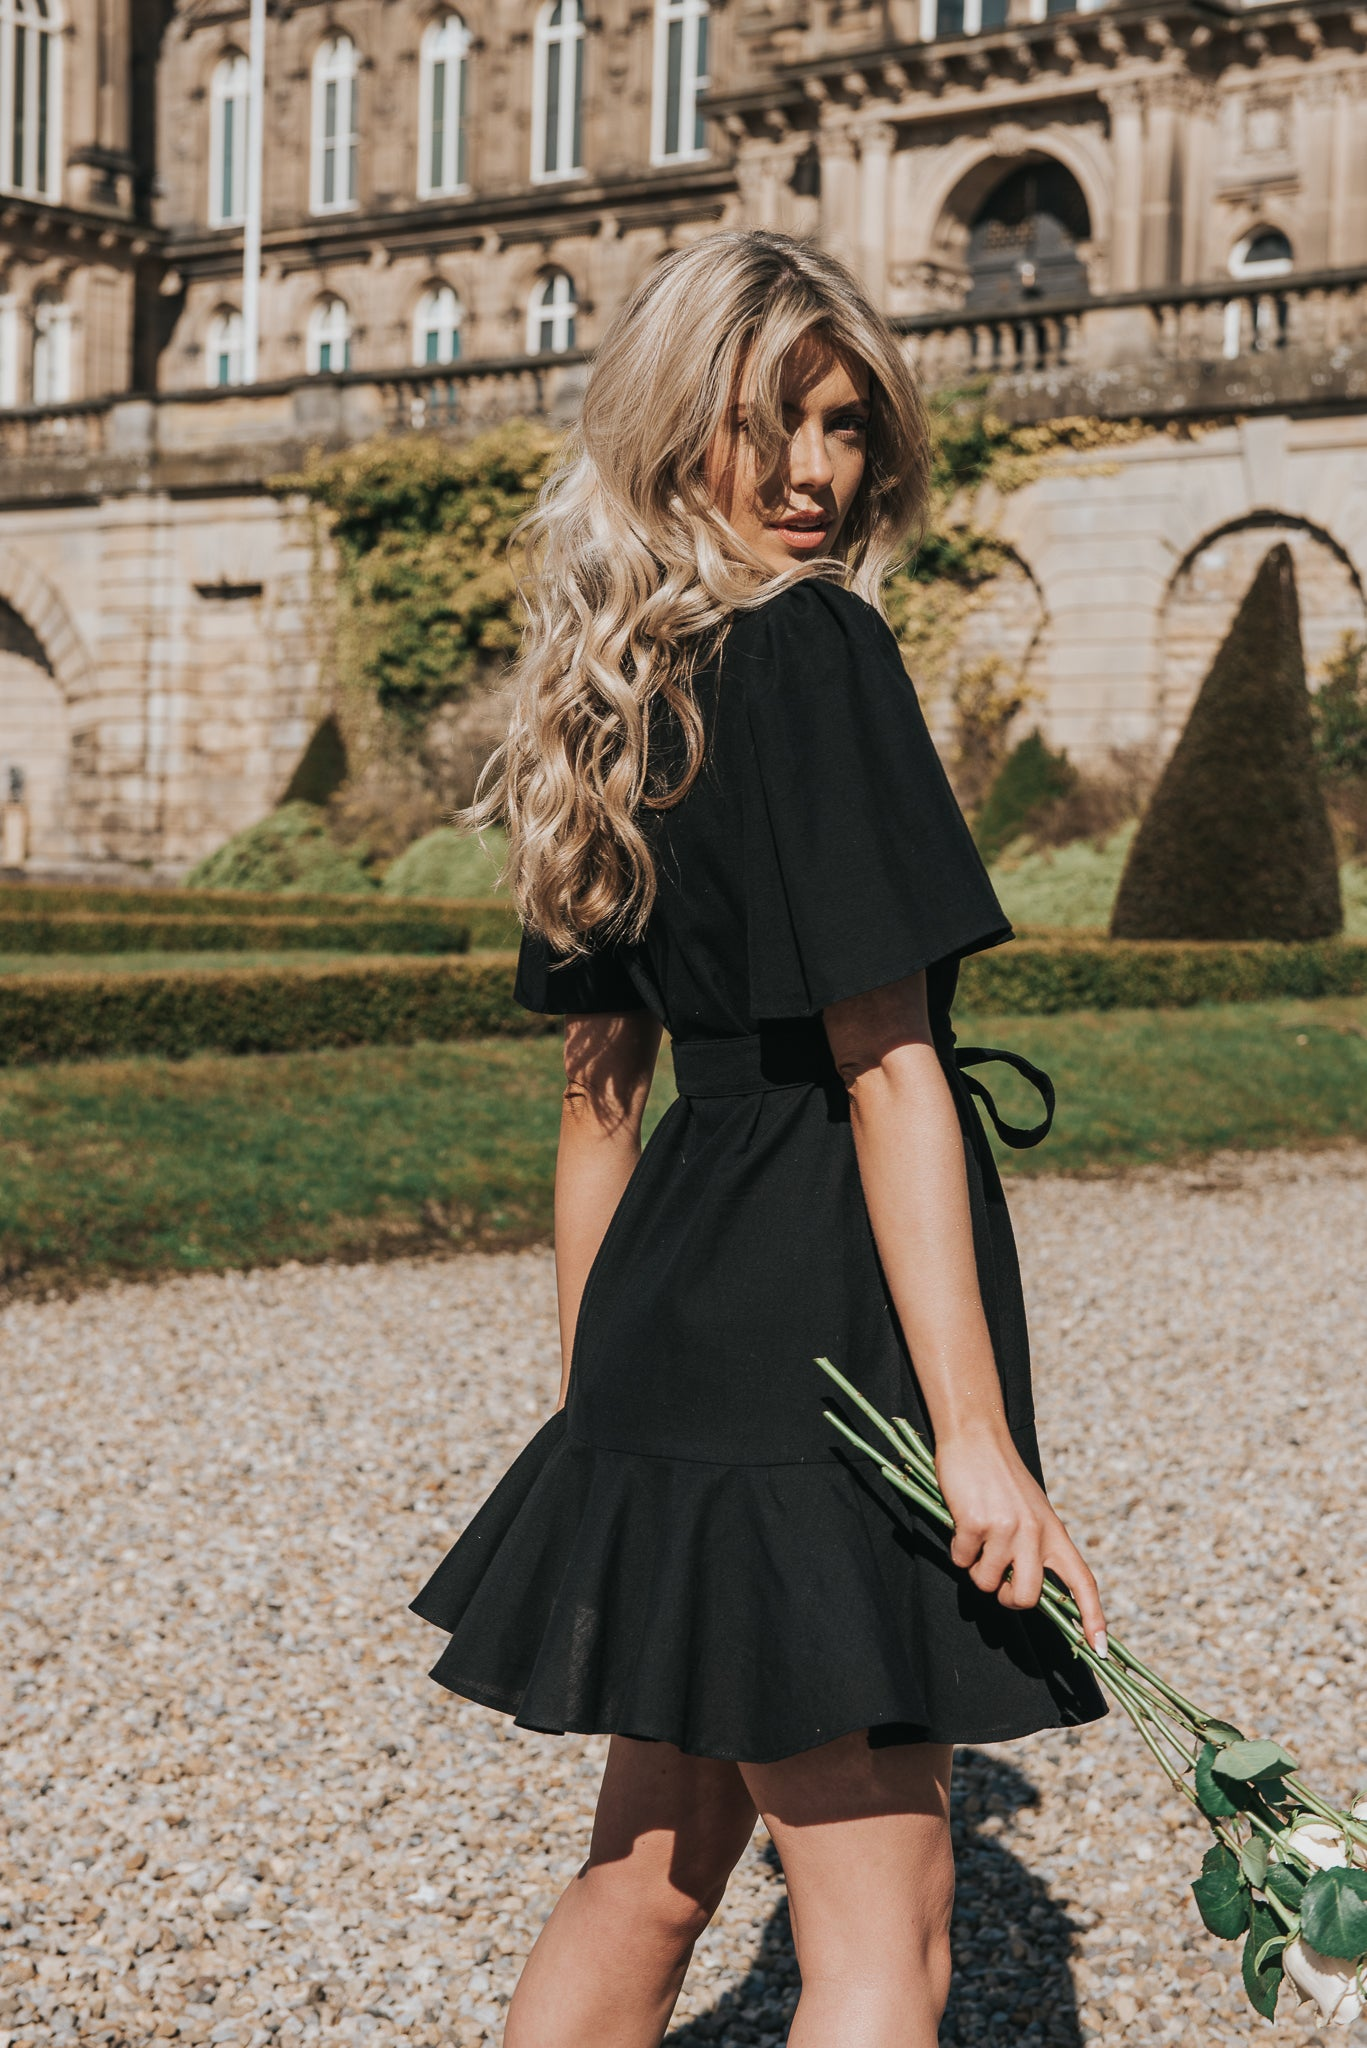 Our bestselling style, the Isabella dress in black hand loomed cotton. Style and sustainability! The perfect wrap mini dress with hem frill and soft cotton belt time. Calla holds stem roses and gazes into the camera